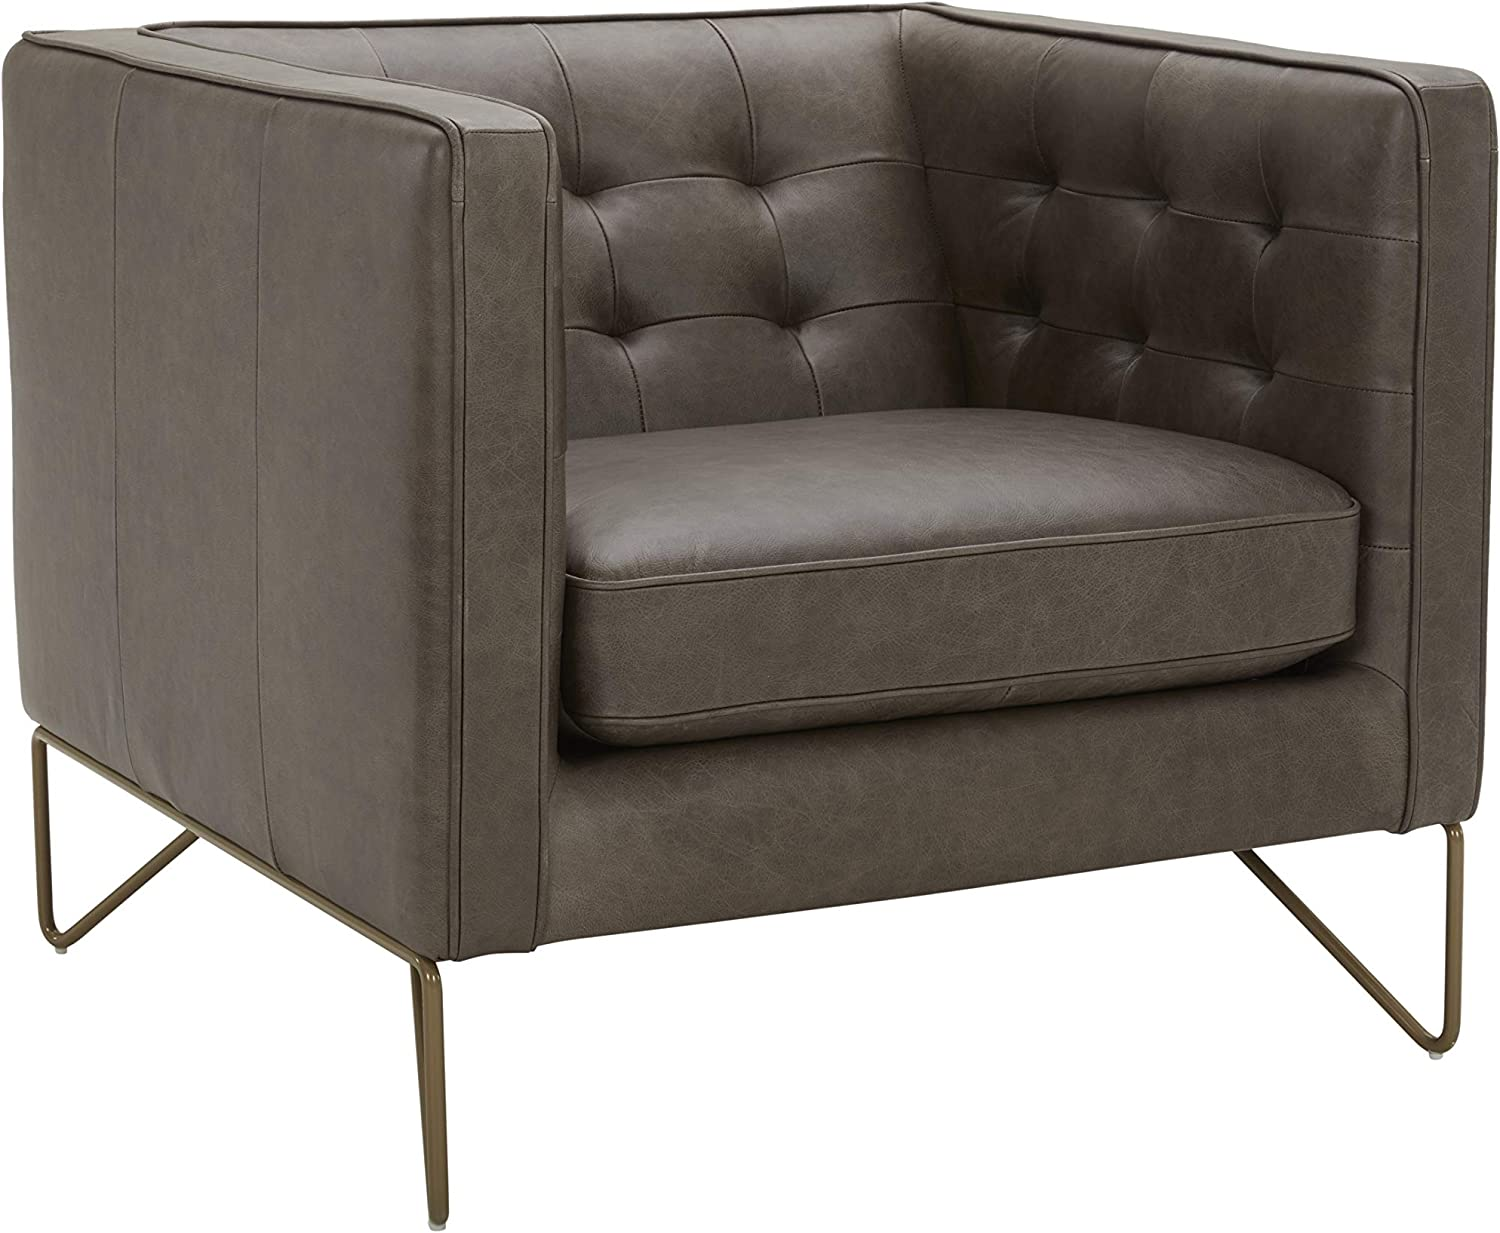 """Amazon Brand – Rivet Brooke Contemporary Mid-Century Modern Tufted Leather Living Room Chair, 35""""W, Grey"""